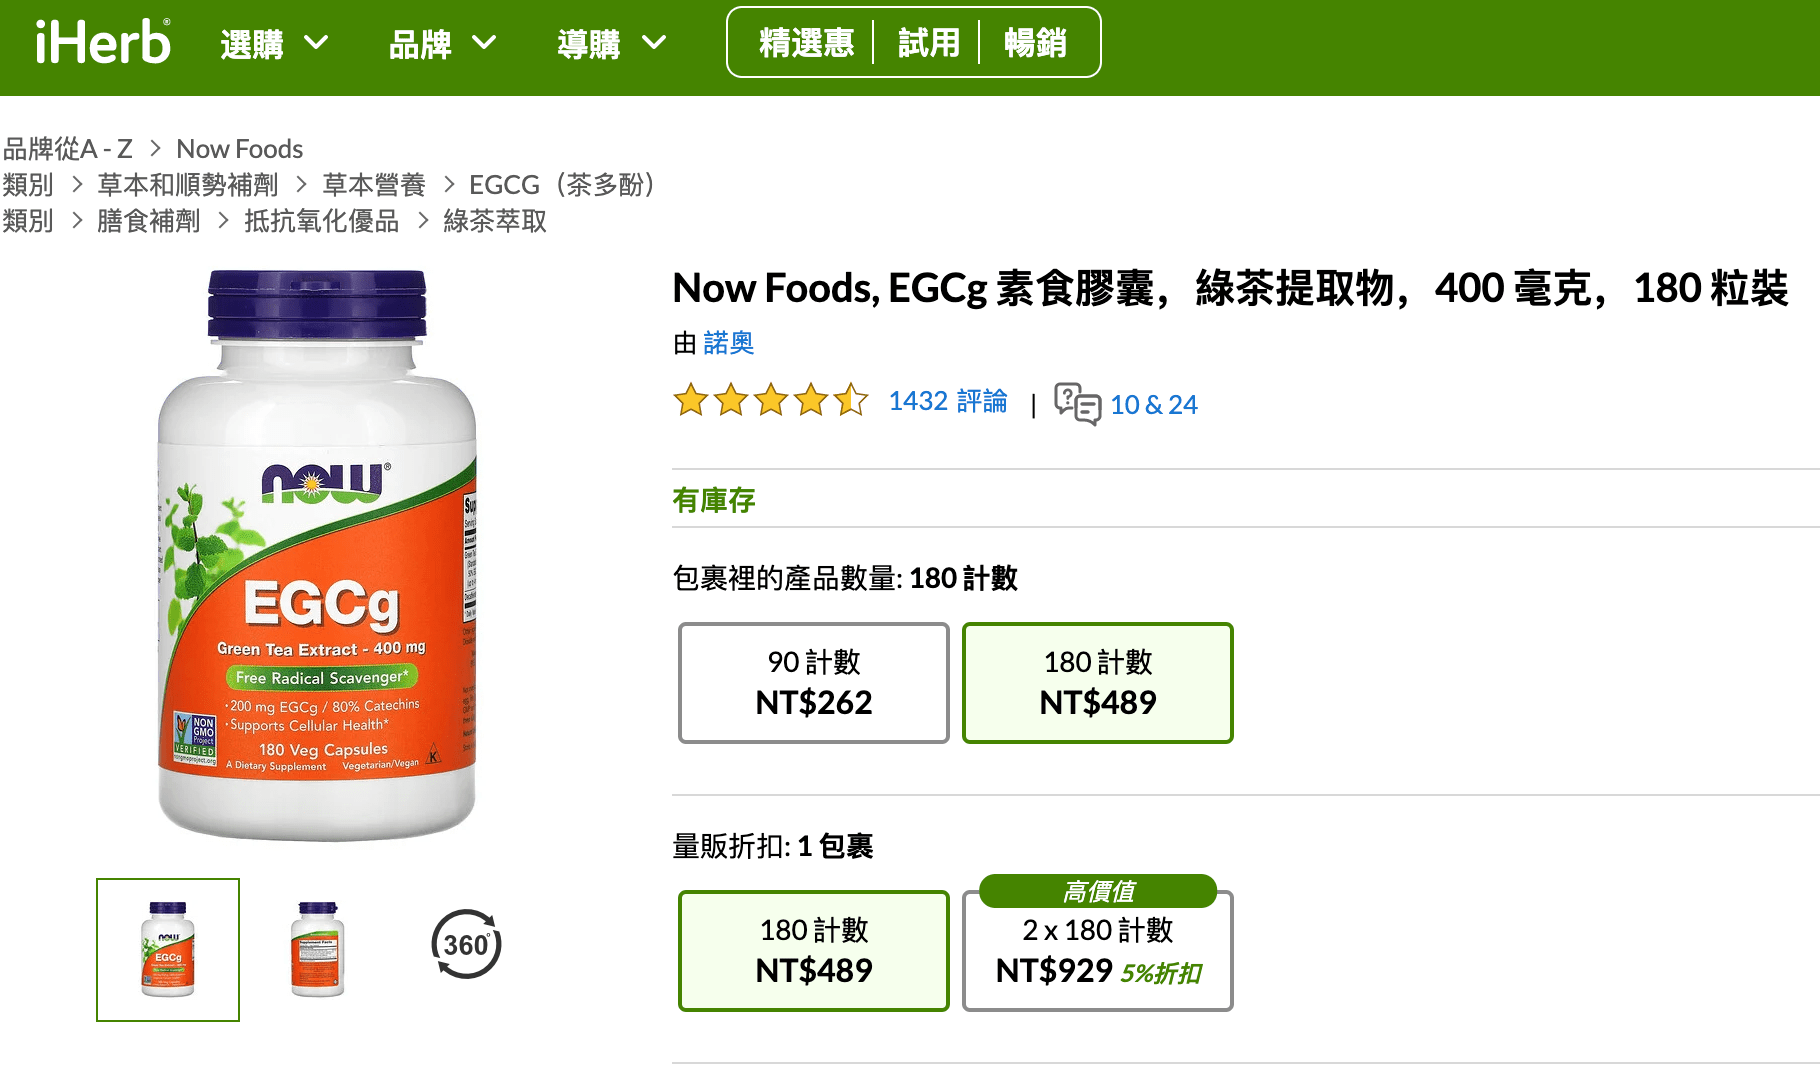 Now Foods, EGCg 素食膠囊,綠茶提取物